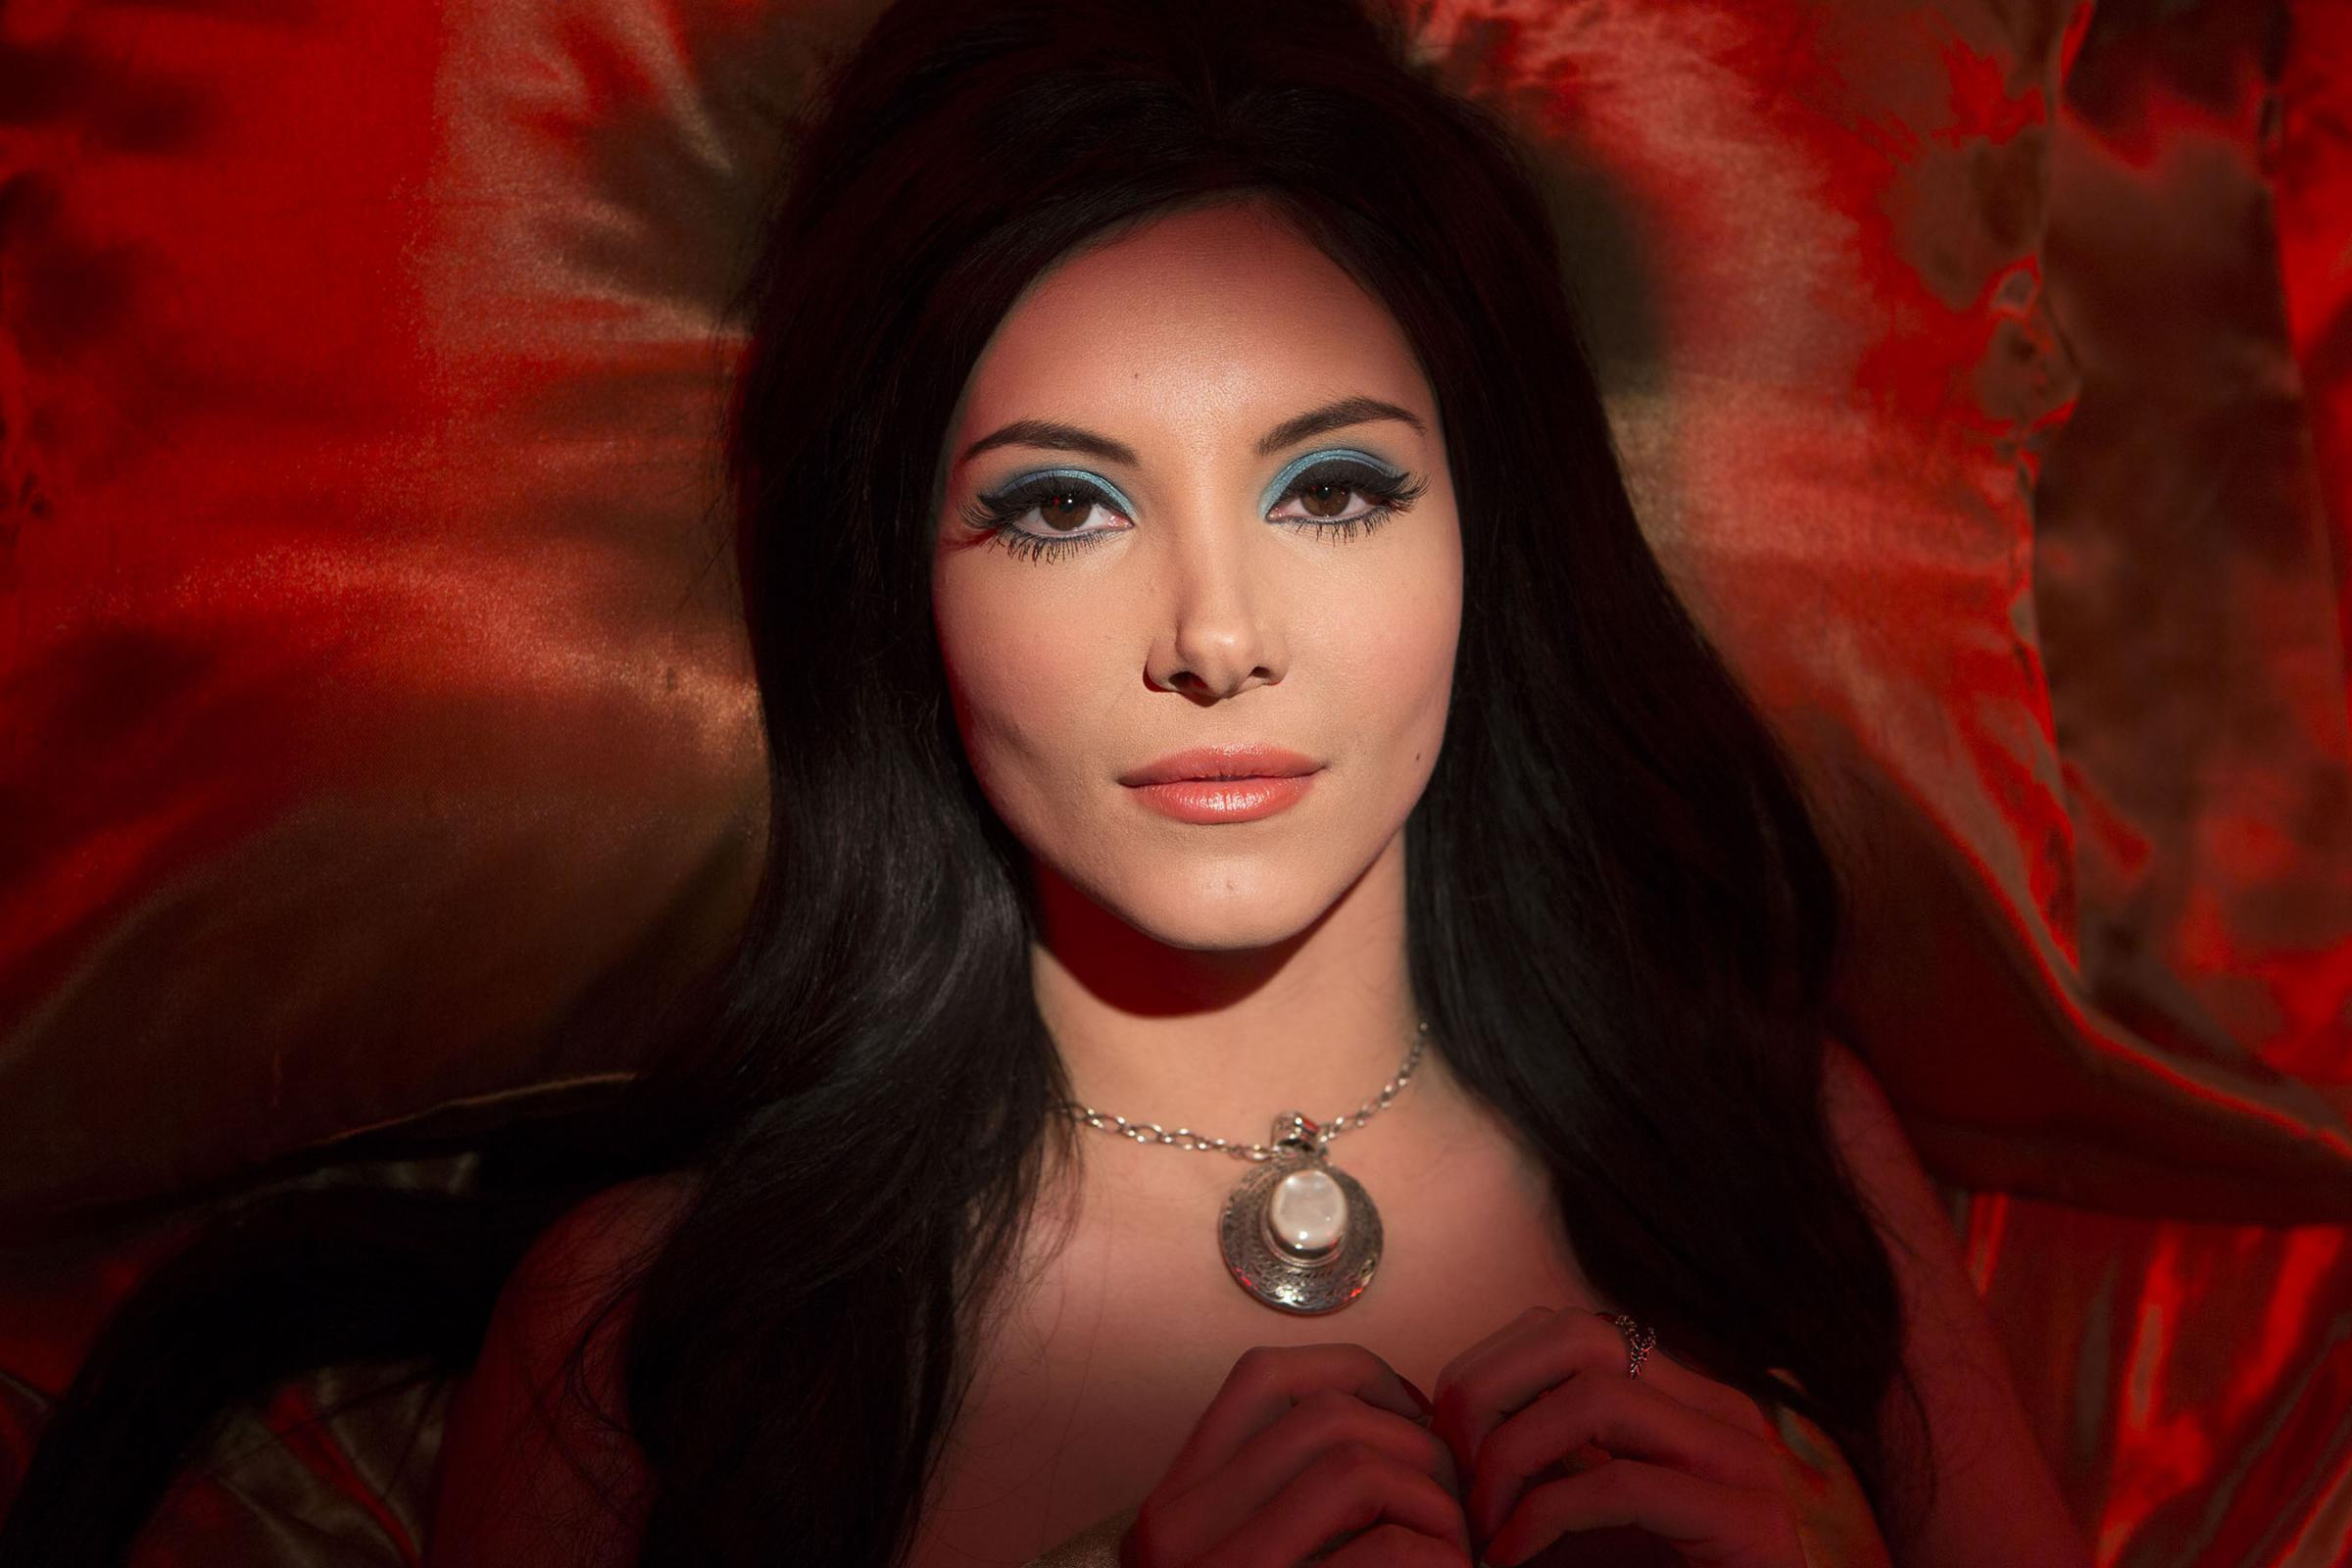 Behind the Curtain presents: The Love Witch